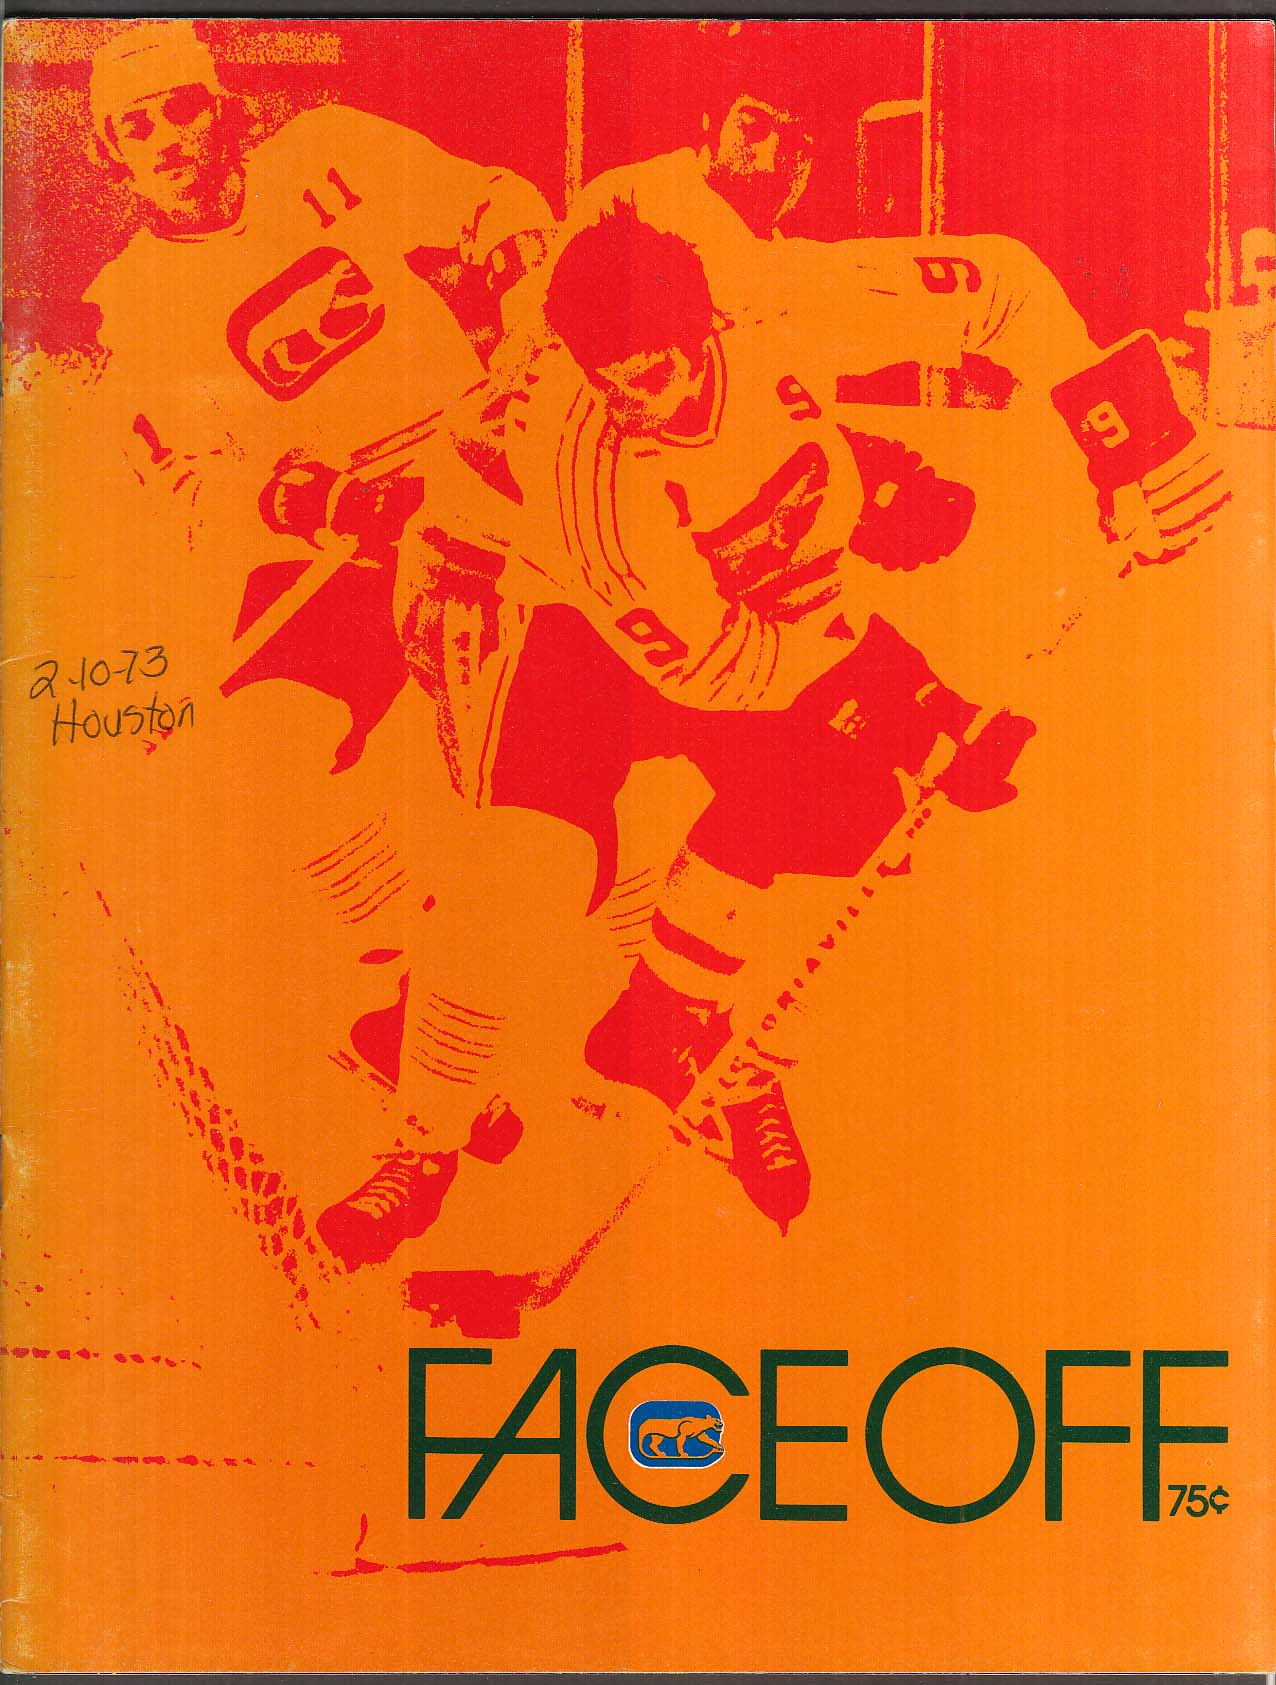 FACEOFF Chicago Cougars Hockey Club Directory 1972-1973 UNSCORED v Houston Aeros